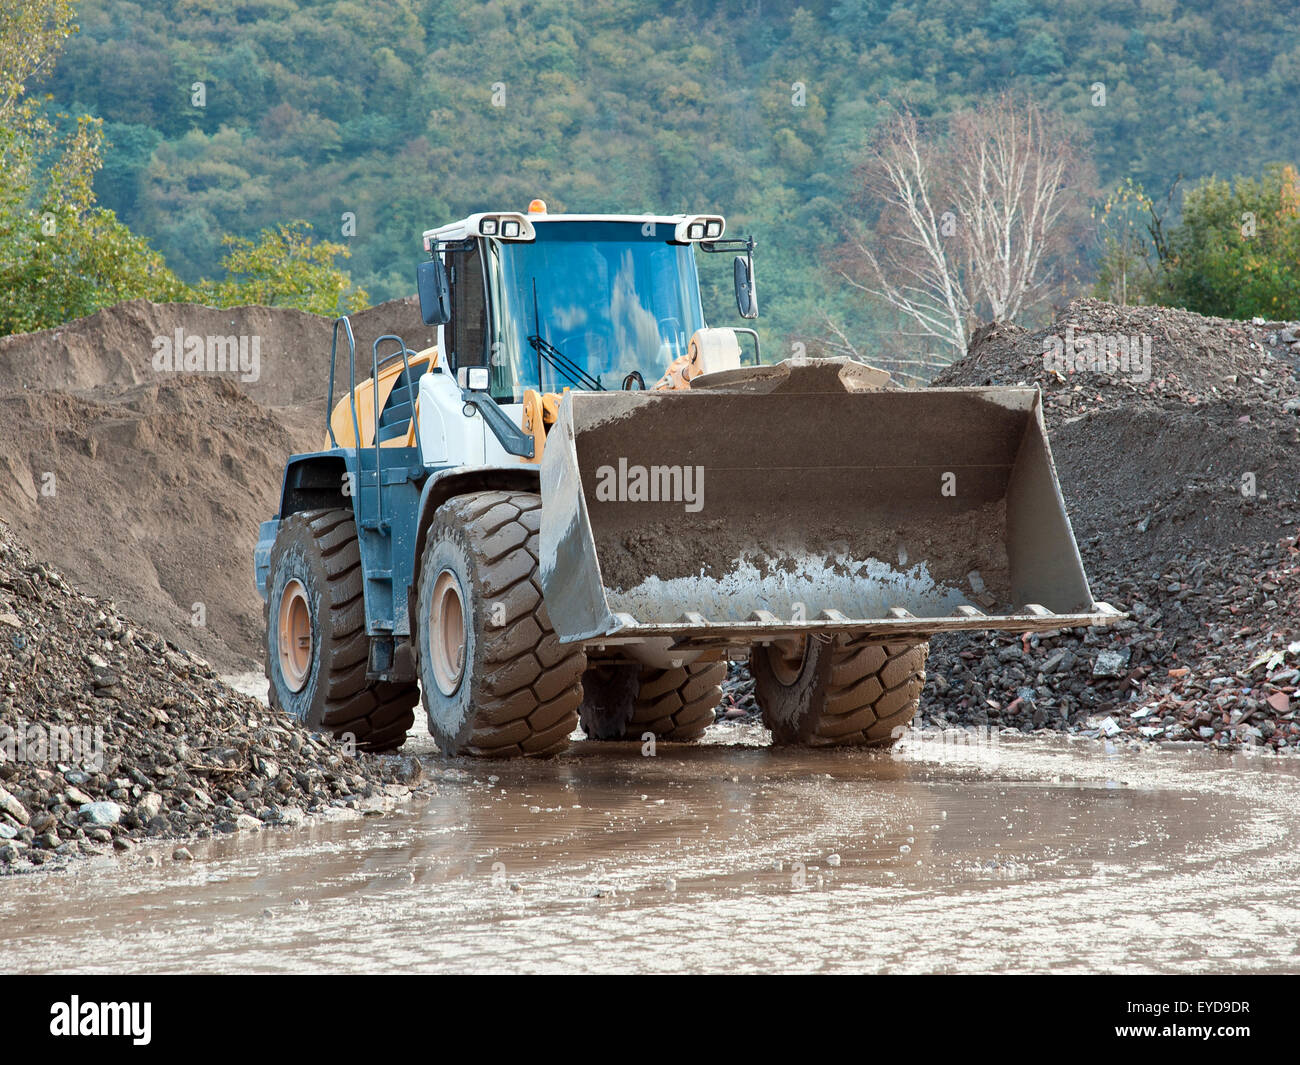 Digger to work in a quarry - Stock Image